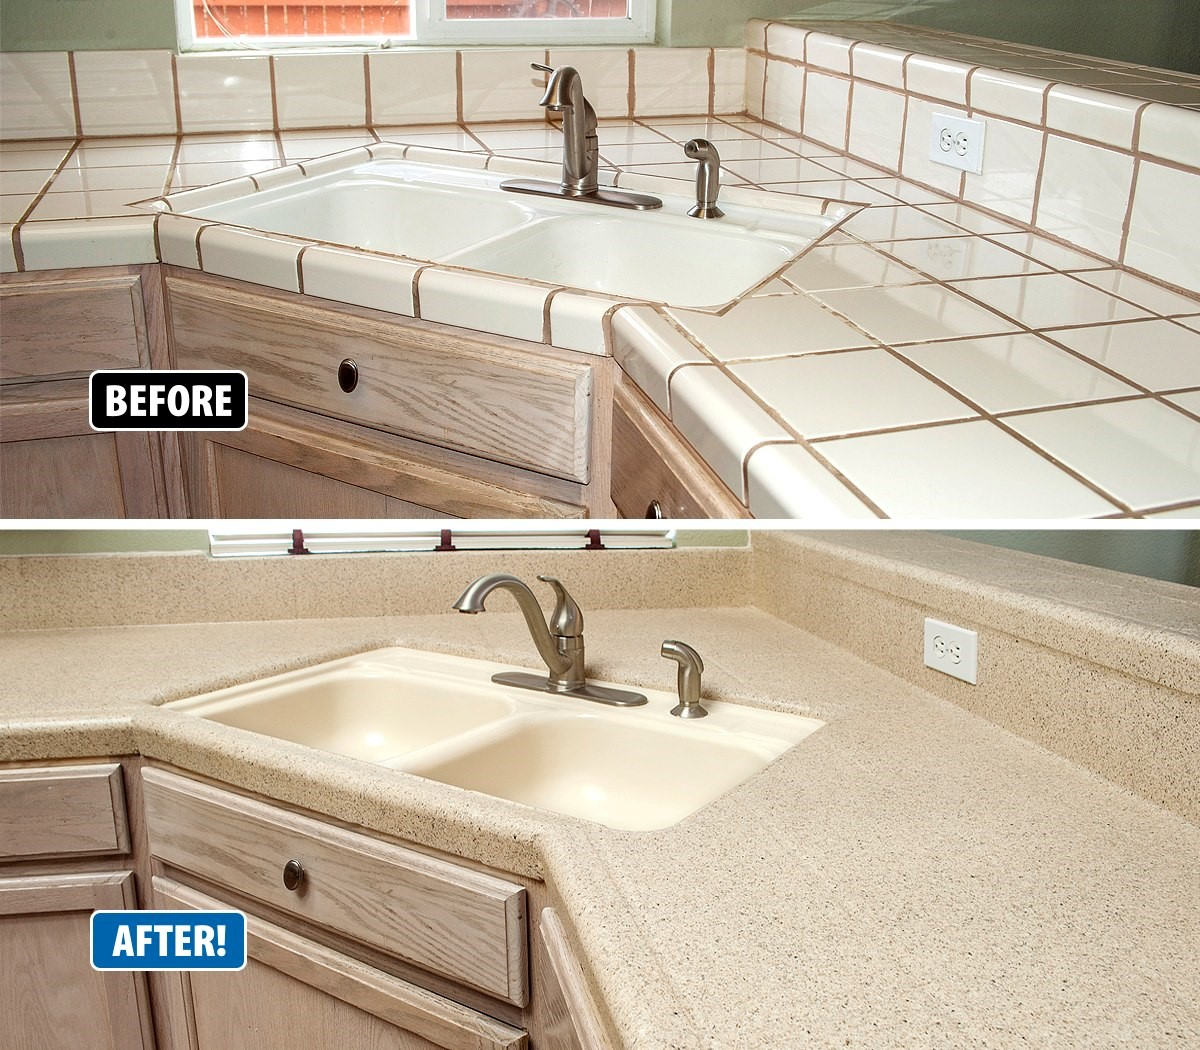 Countertop Refinishing Revitalizes Outdated Kitchens